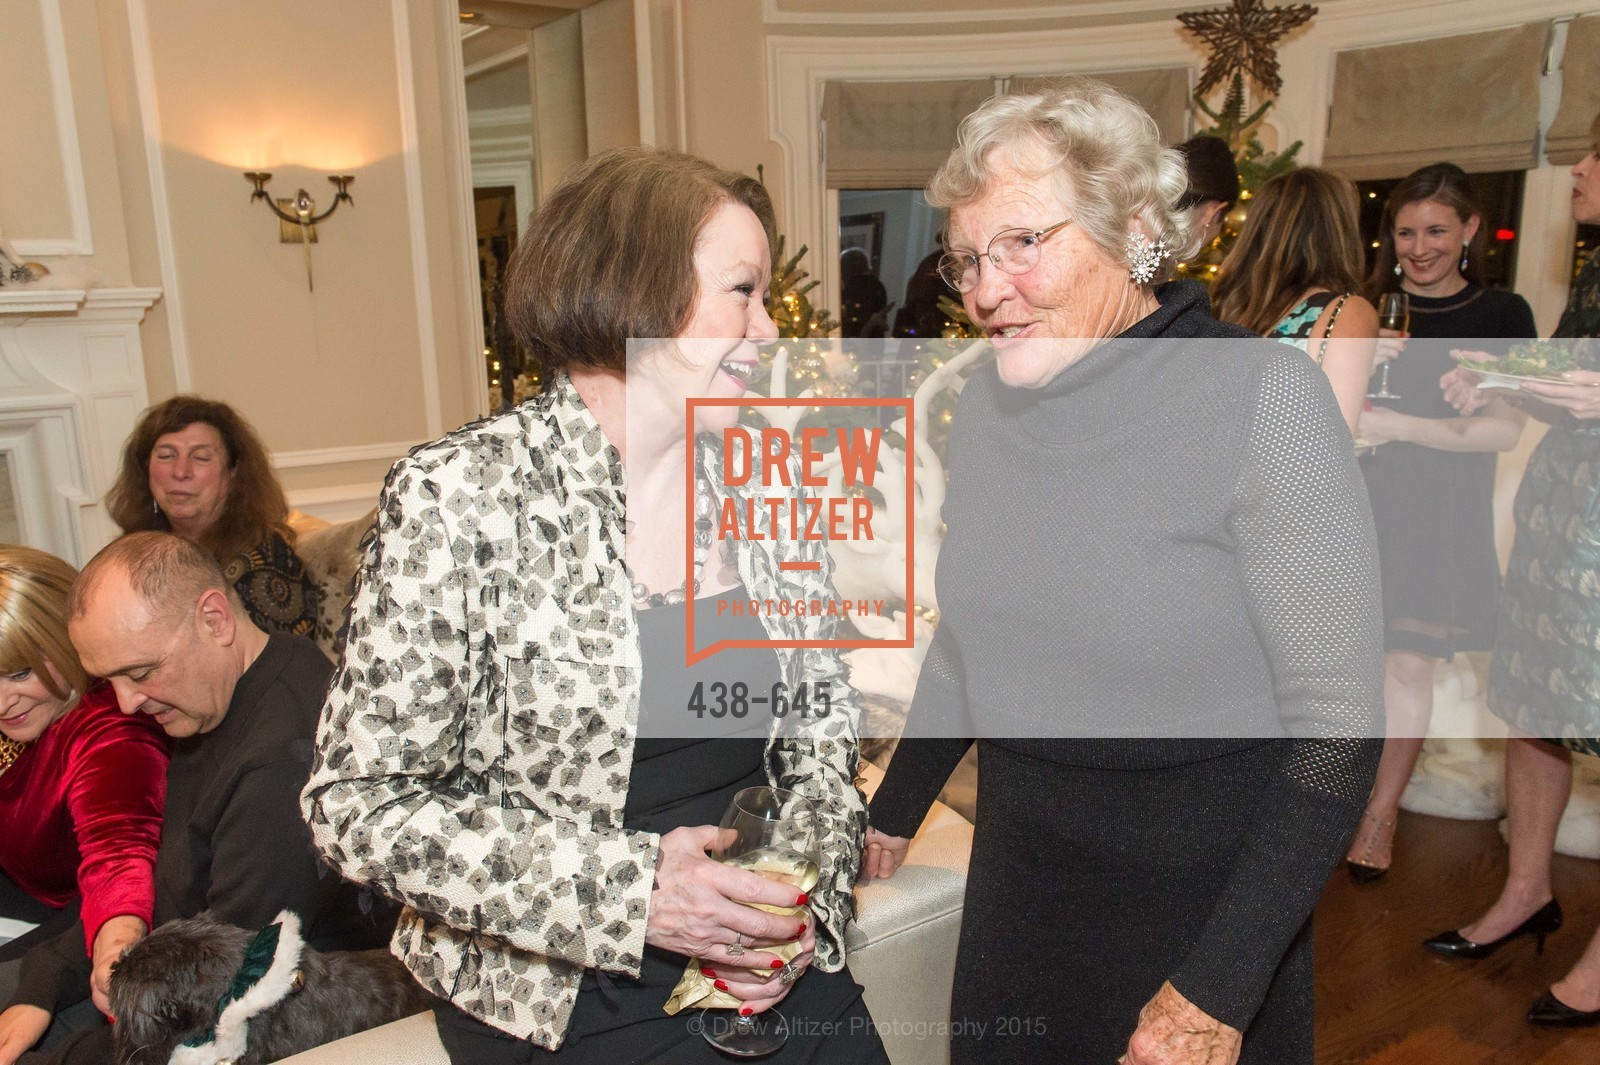 Jennifer Berger, Jean Shuh, Atherton Holiday Party, Private Residence, December 12th, 2015,Drew Altizer, Drew Altizer Photography, full-service event agency, private events, San Francisco photographer, photographer California